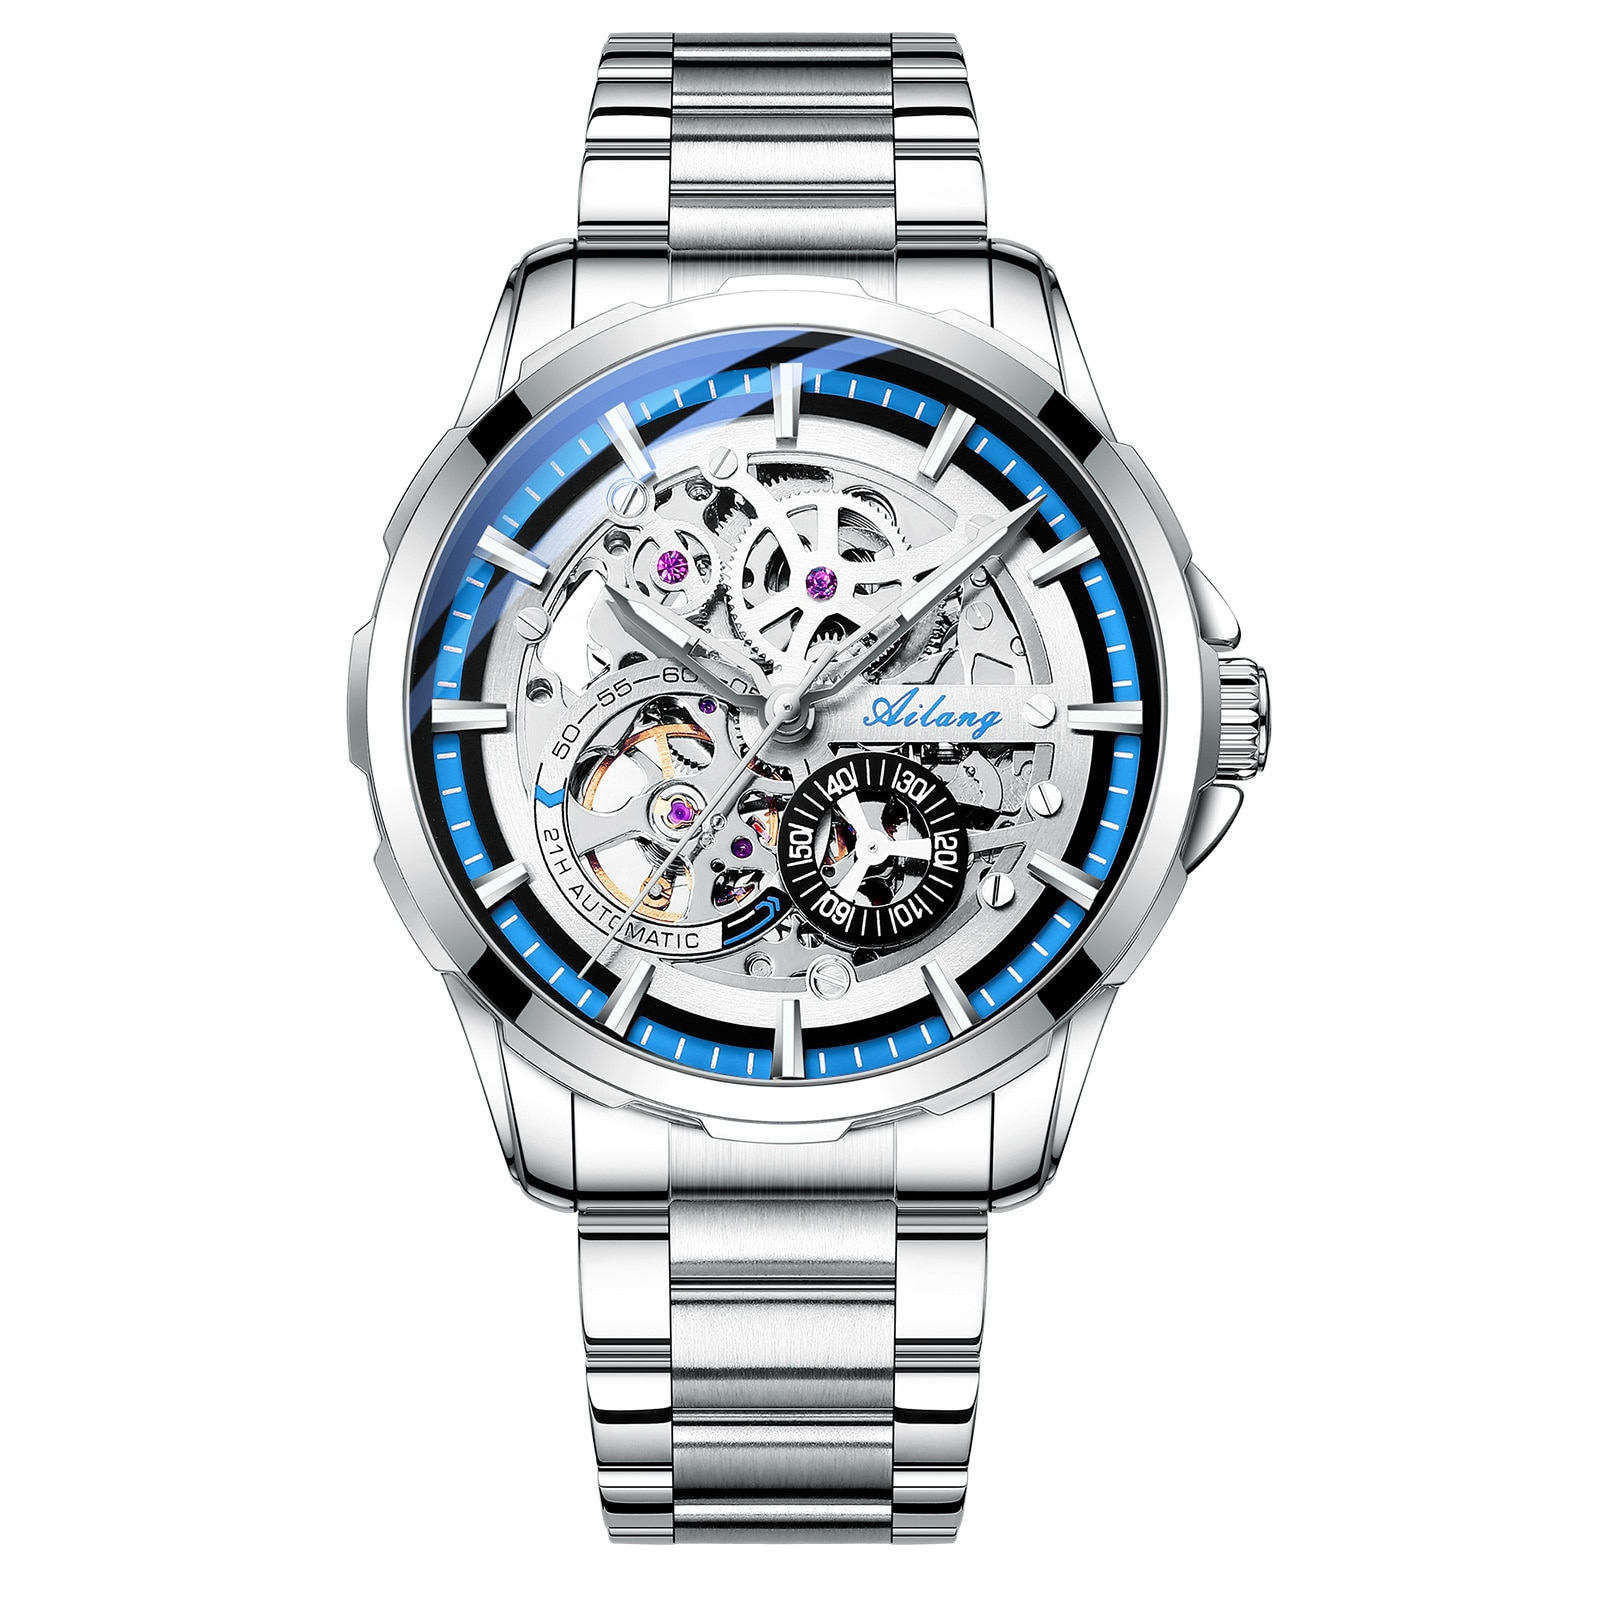 Hollowed Out Personalized Full-automatic Mechanical Watch Waterproof Men's Watch New Fashion enlarge